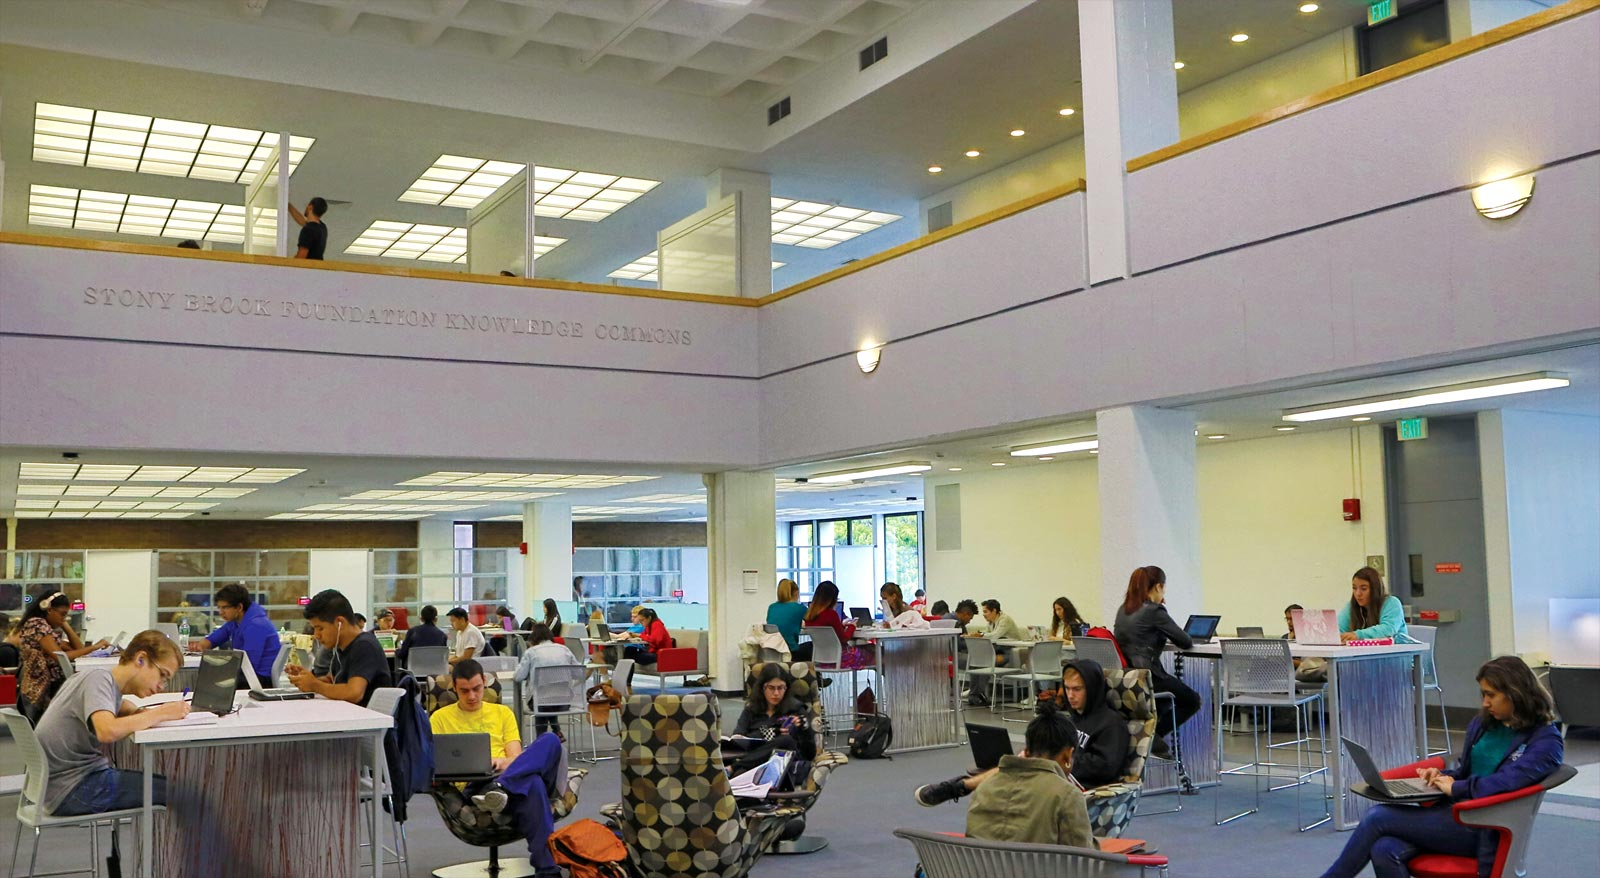 The North Reading Room, with a flexible learning lab, includes ergonomic seating.